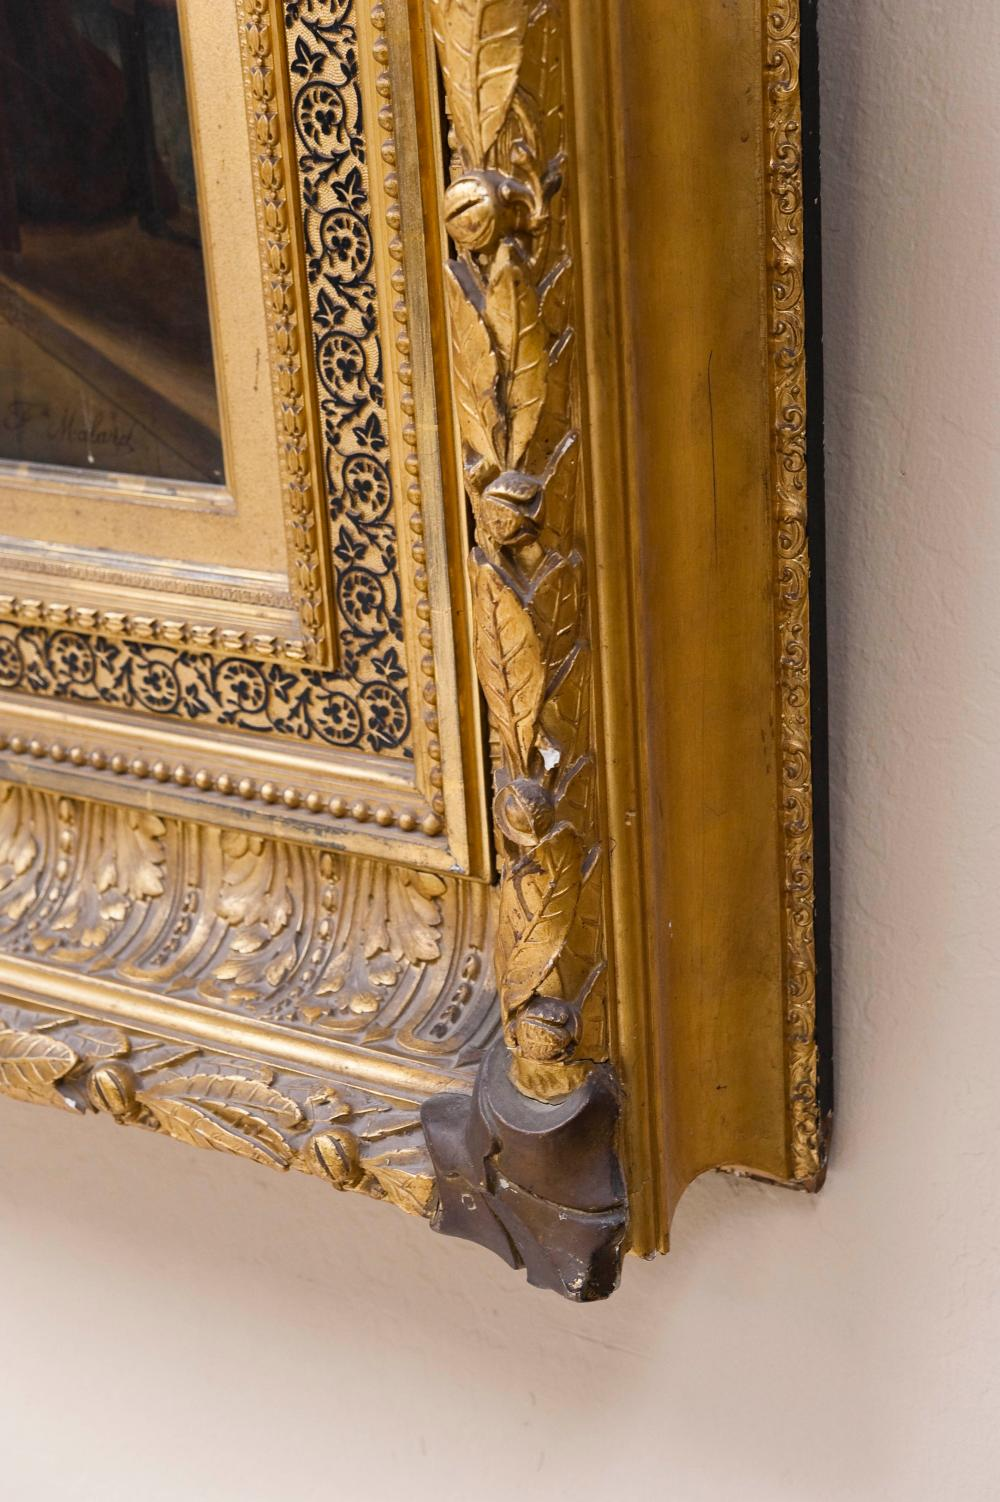 19TH C. EXQUISITE LARGE GOLD LEAF FRAME WITH PAINTING.